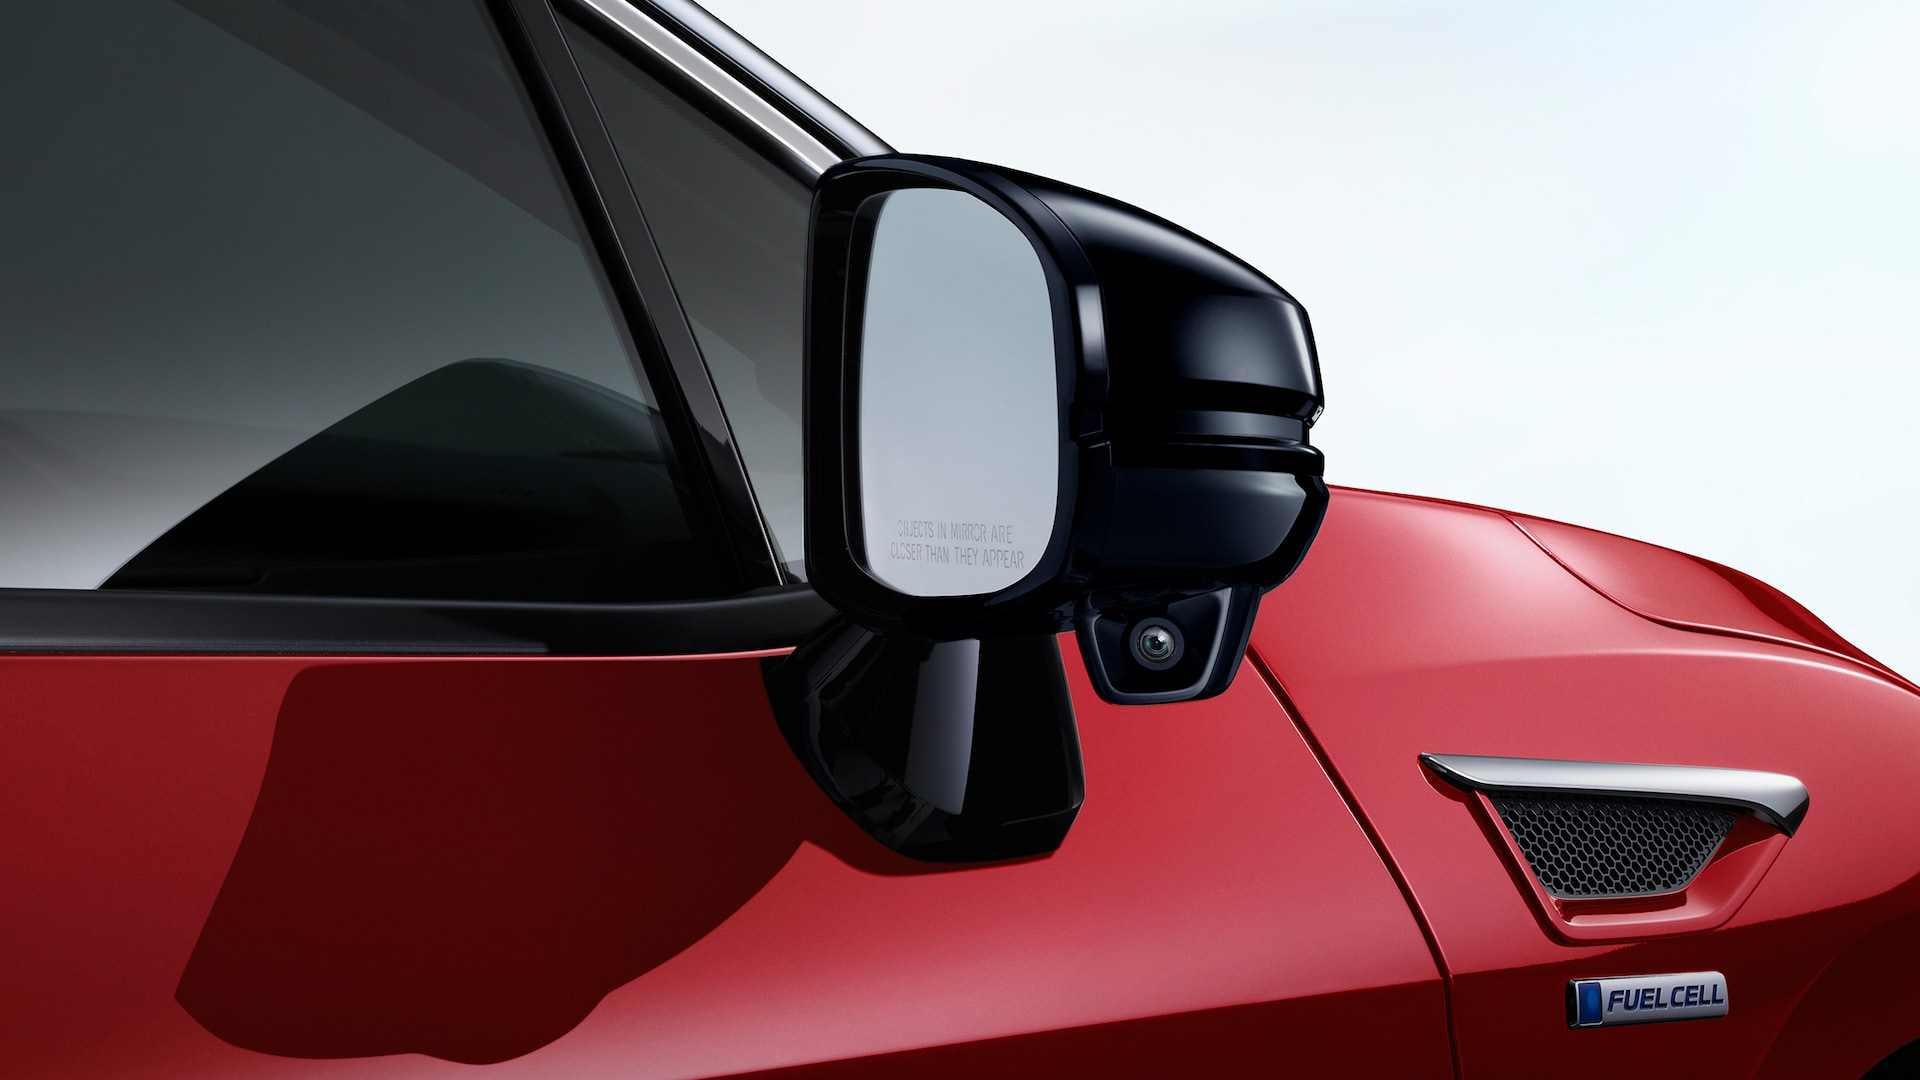 Detail of passenger-side mirror camera for Honda LaneWatch™ on 2020 Honda Clarity Fuel Cell.